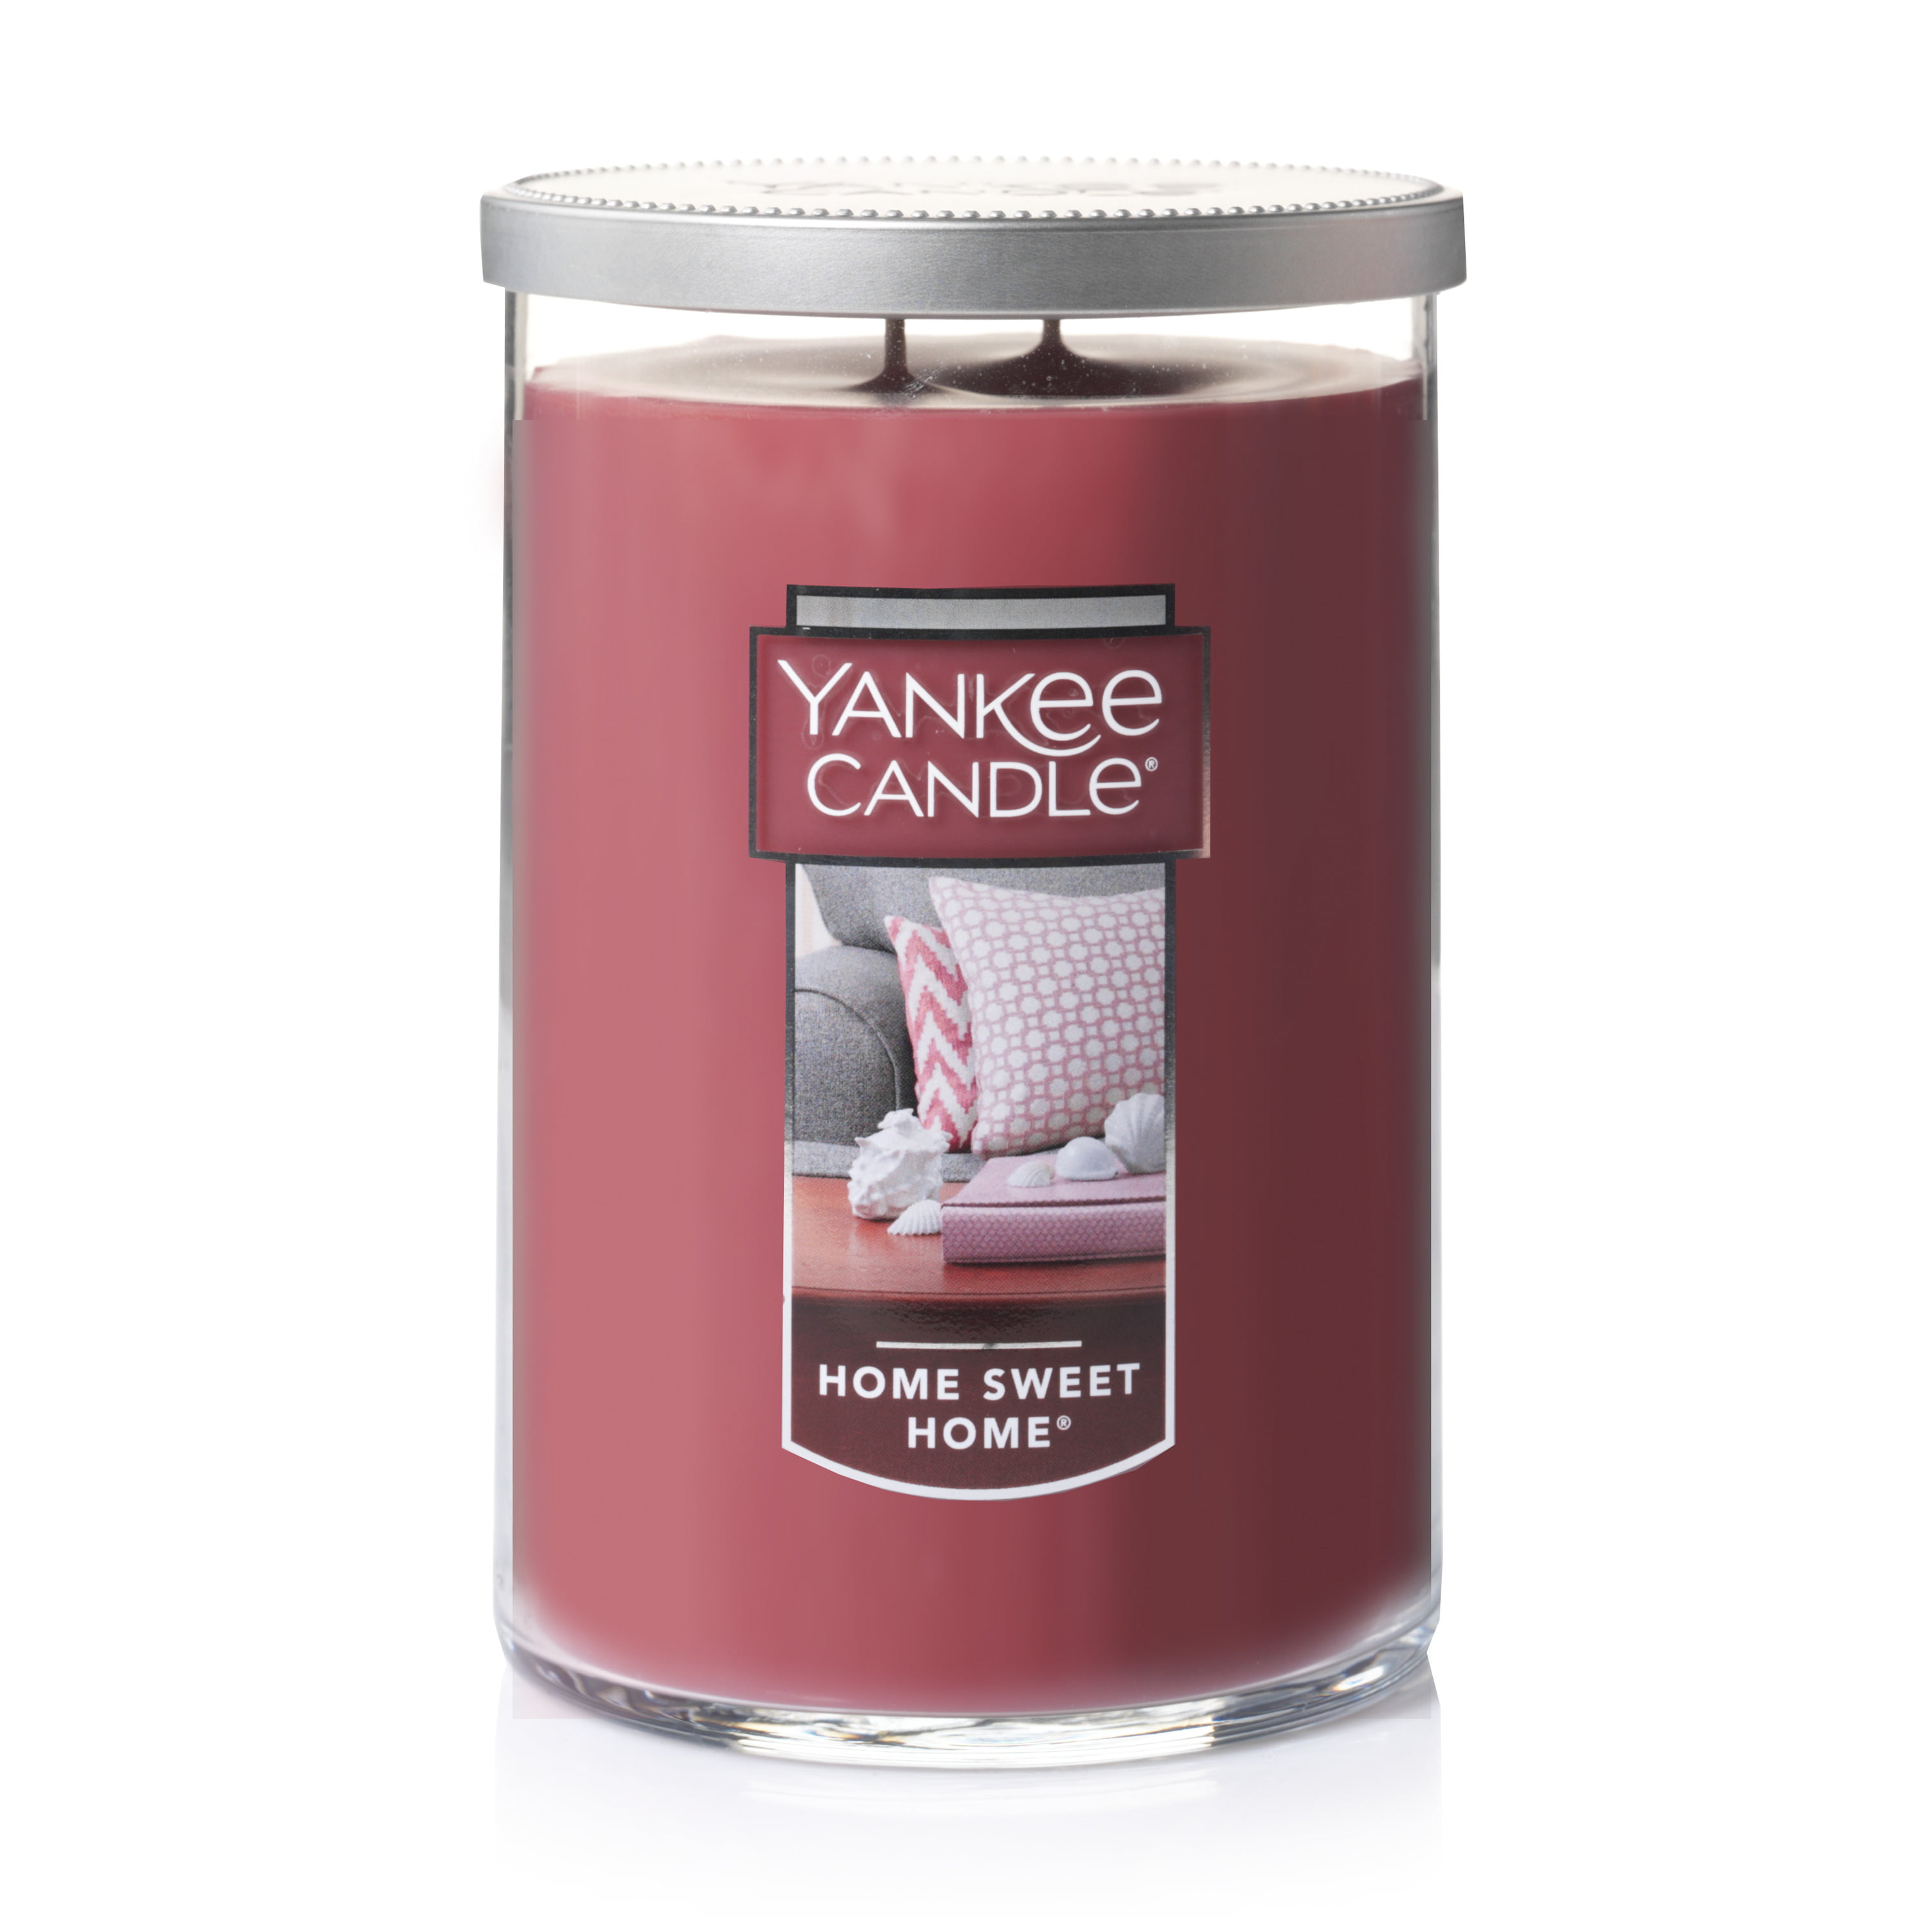 Yankee Candle Large 2-Wick Tumbler Candle, Home Sweet Home by Newell Brands